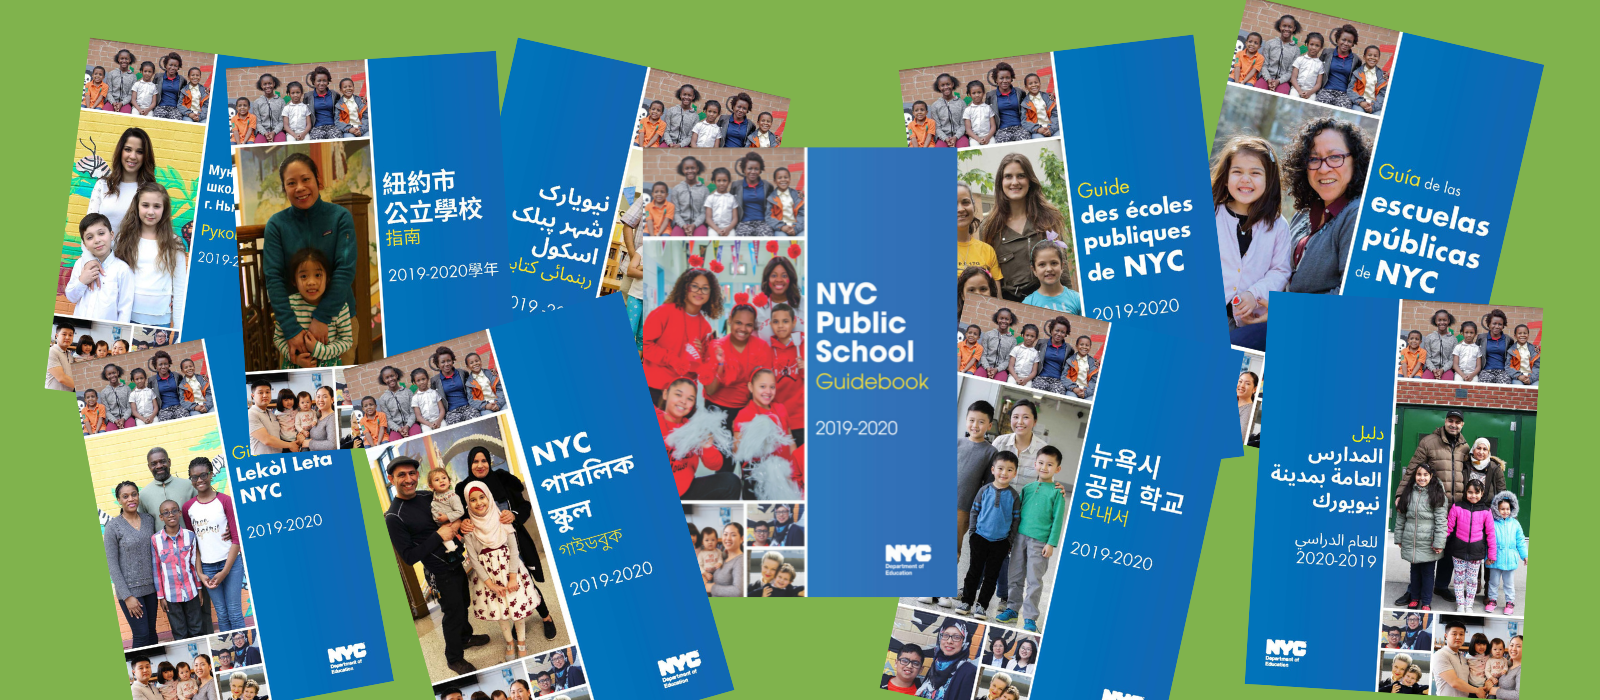 NYC Public School Guidebook Now Available